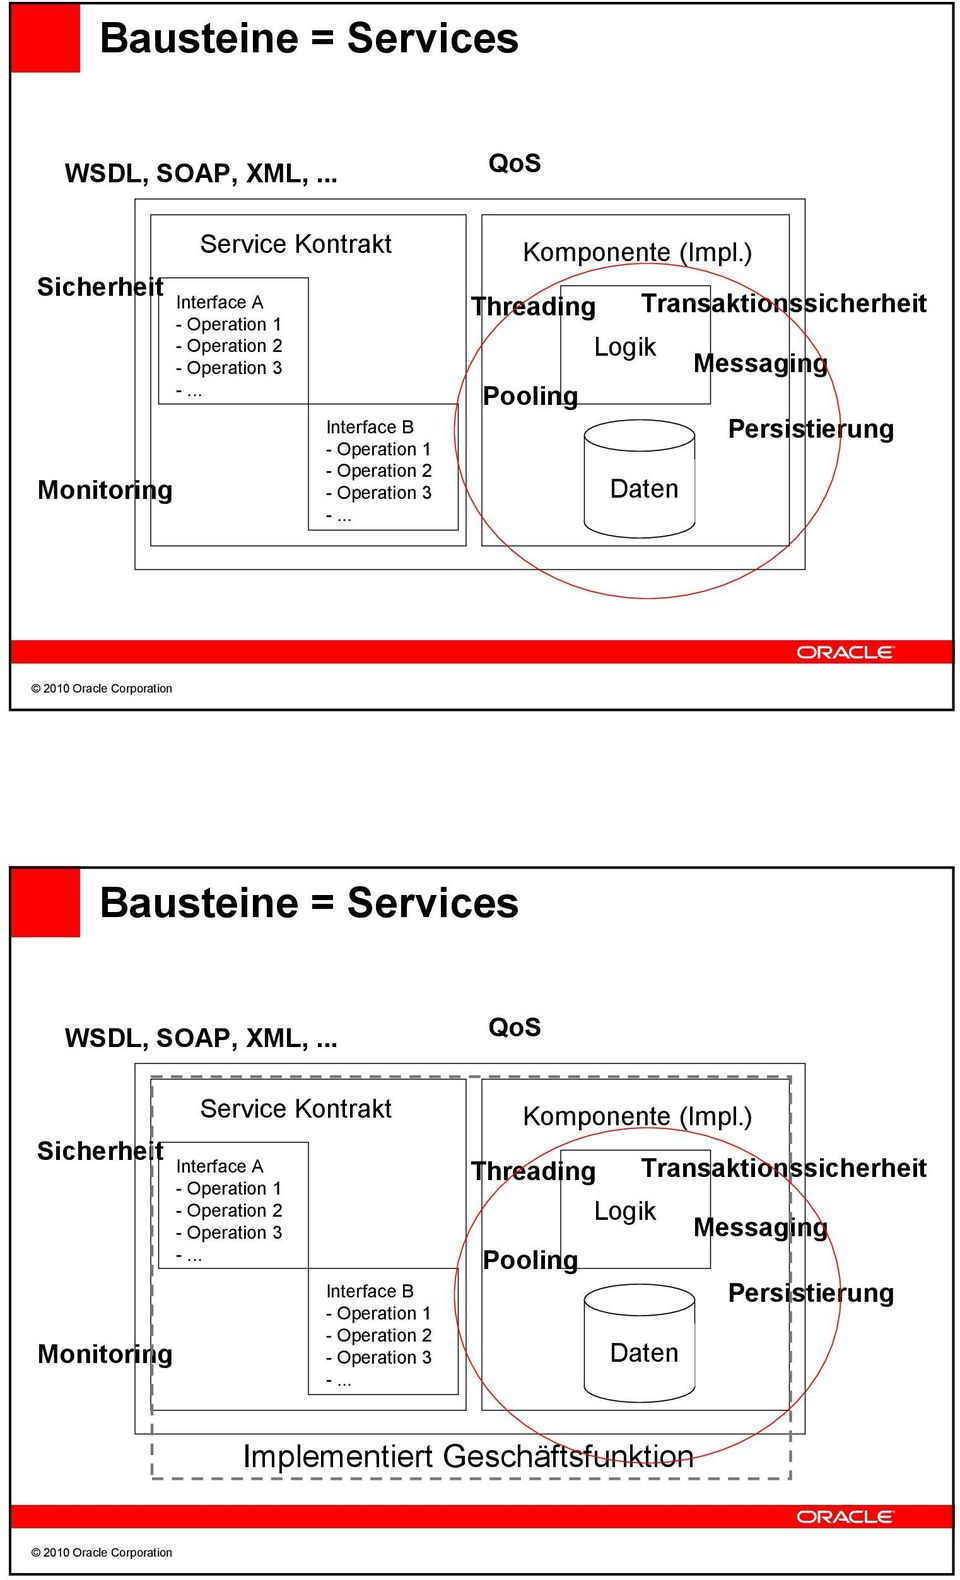 ) Threading Transaktionssicherheit Logik Messaging Pooling Persistierung Daten ) Threading Transaktionssicherheit Logik